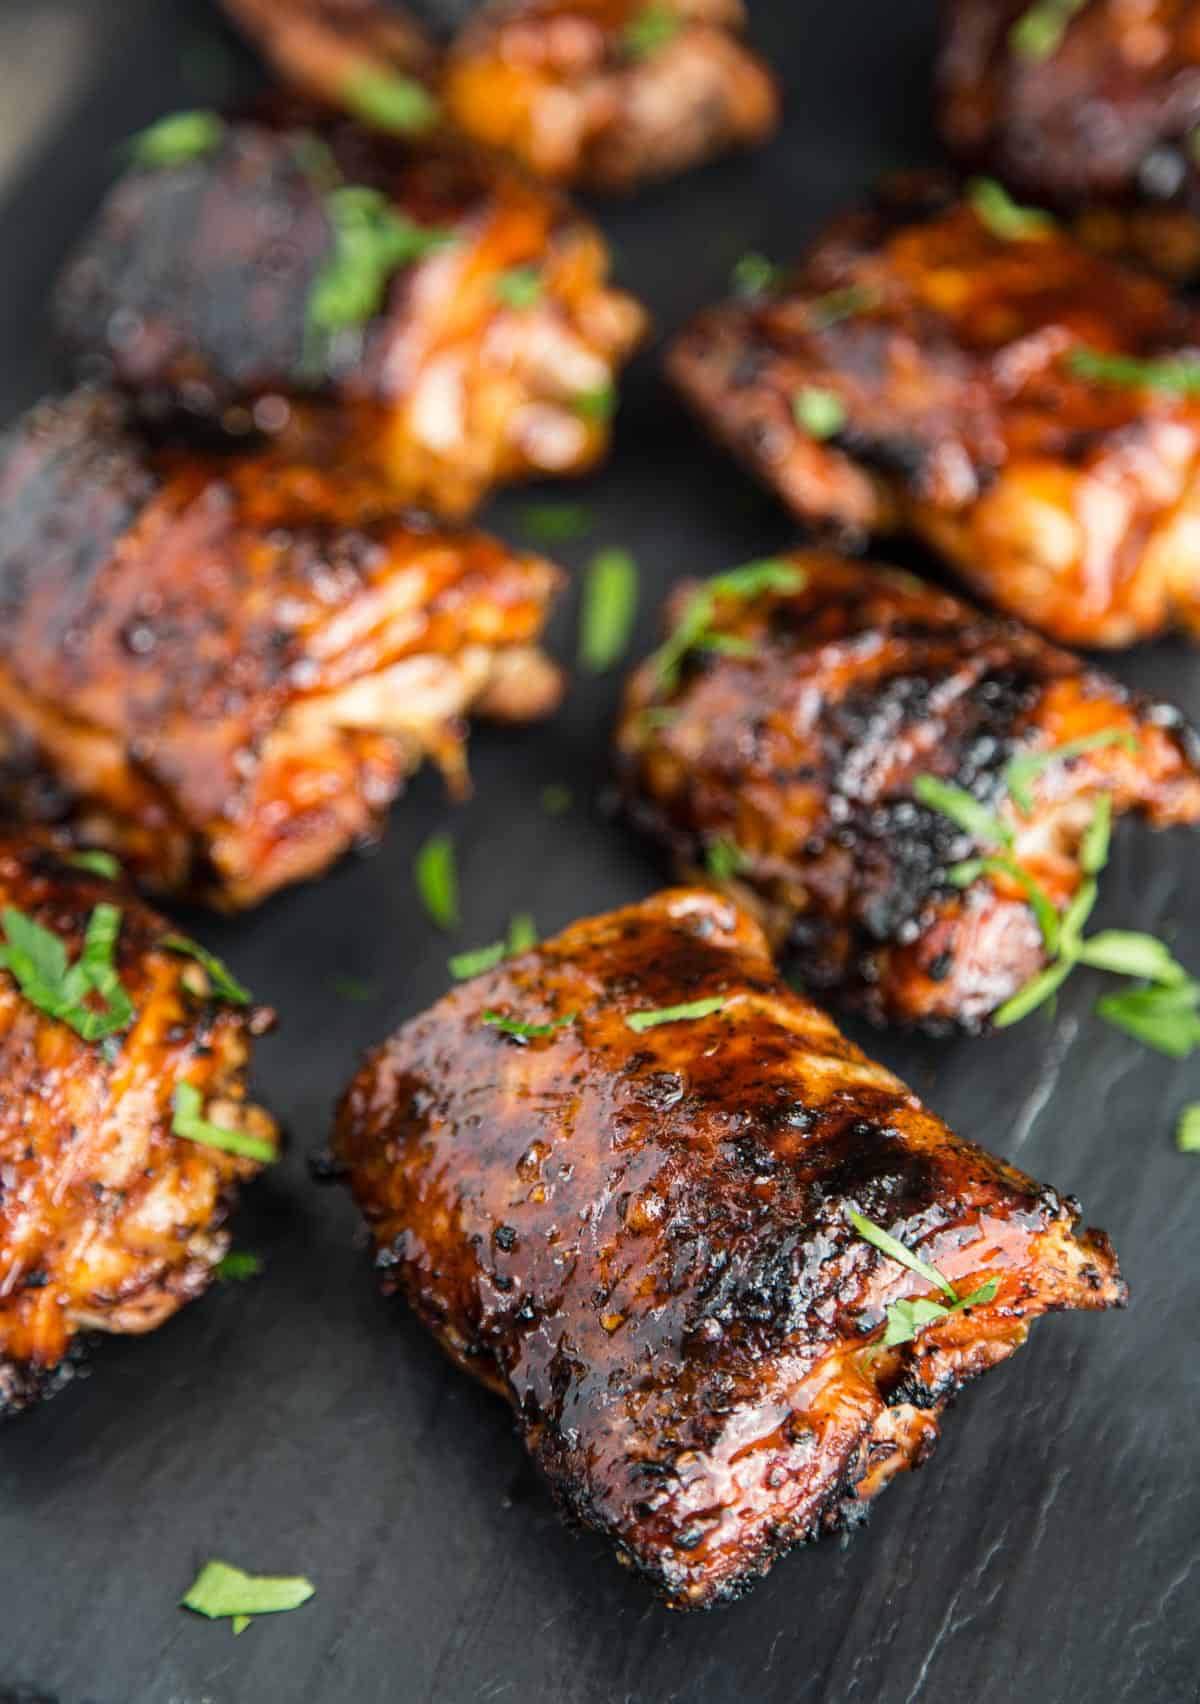 A closeup of grilled chicken thighs on a black platter after being topped with BBQ sauce